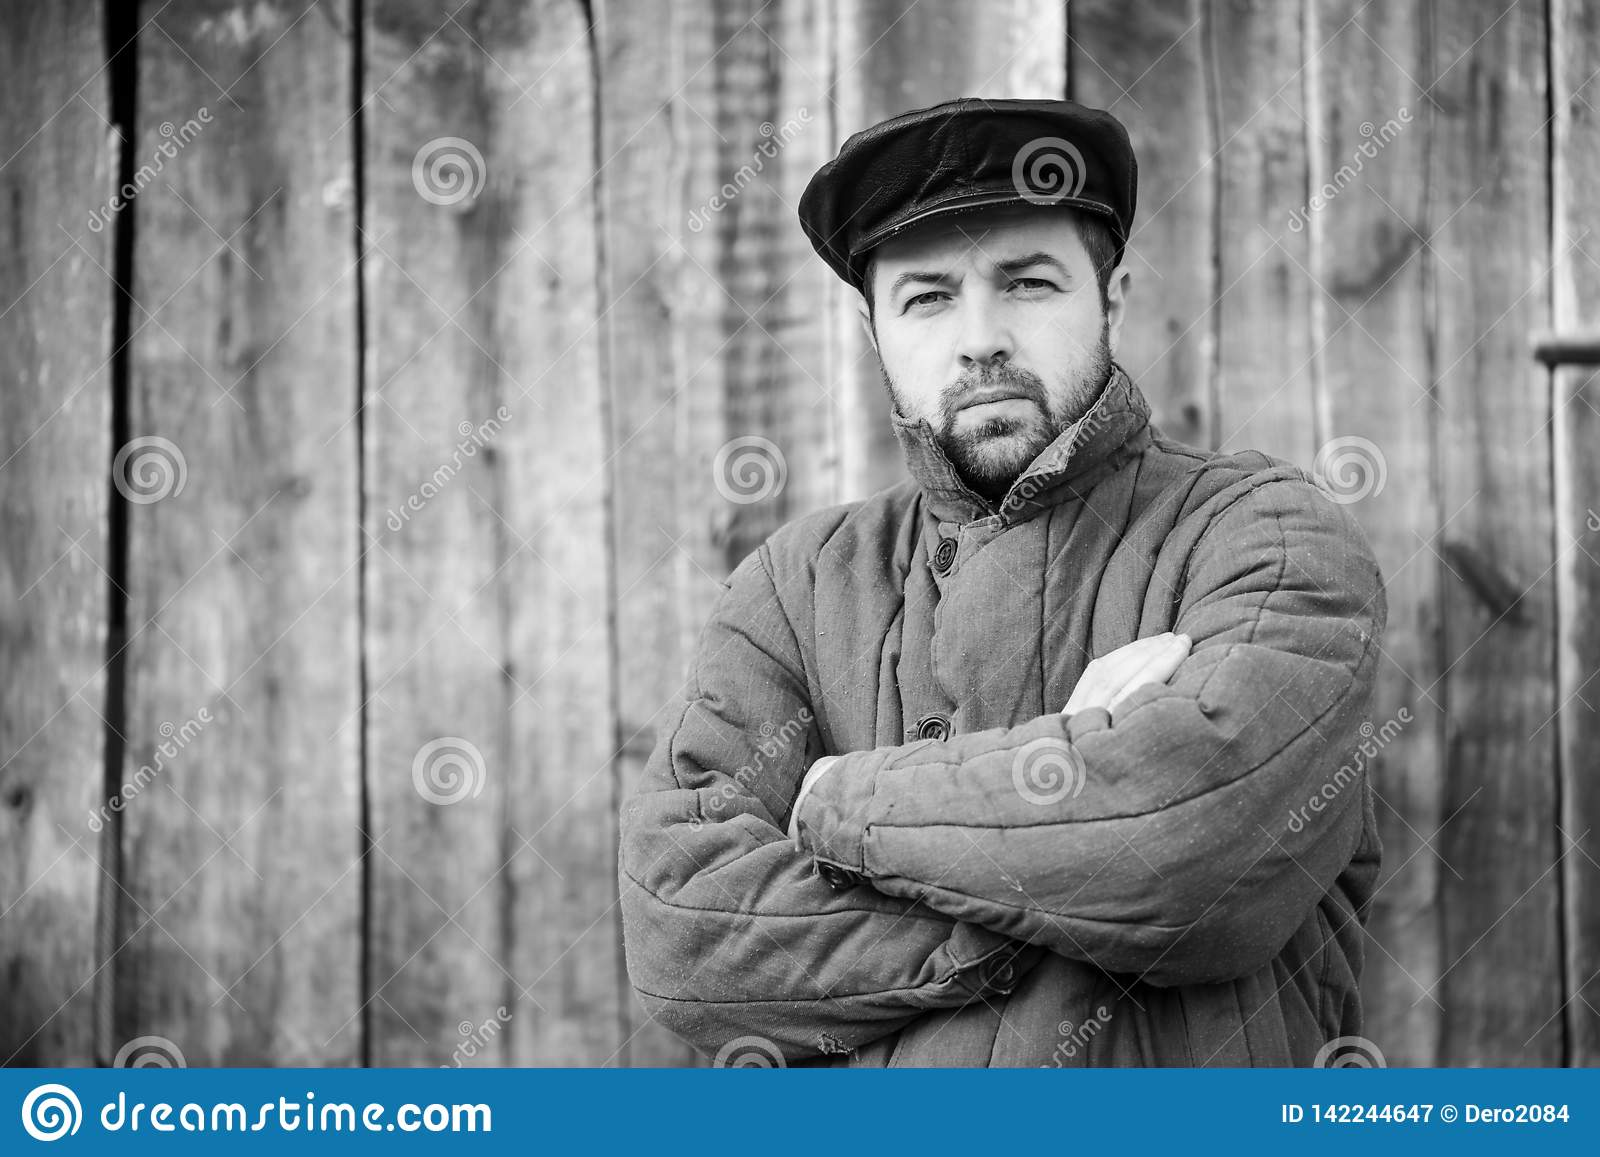 Monochrome portrait of bearded men in old-fashioned clothes, caucasian man 35 years old